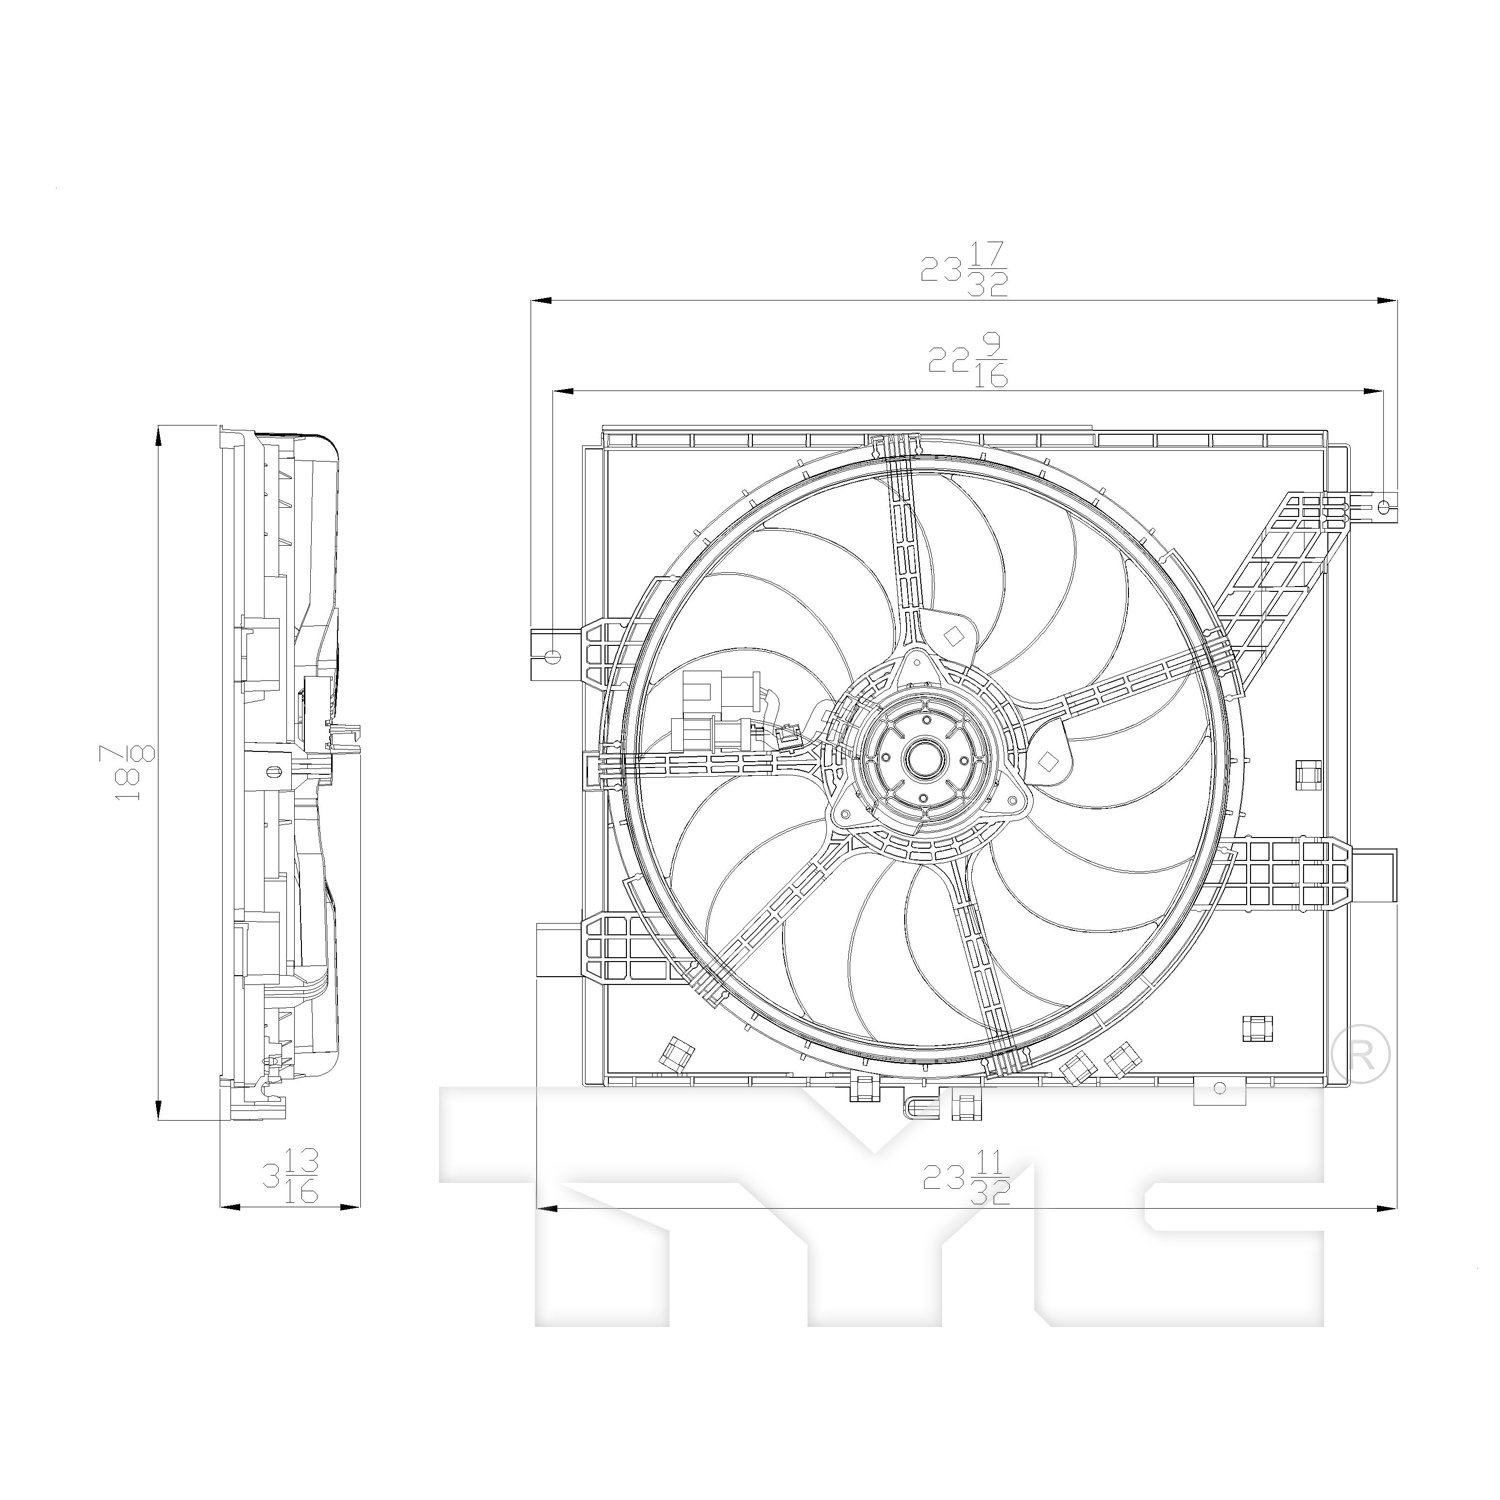 hight resolution of 2012 nissan versa dual radiator and condenser fan assembly ty 622770